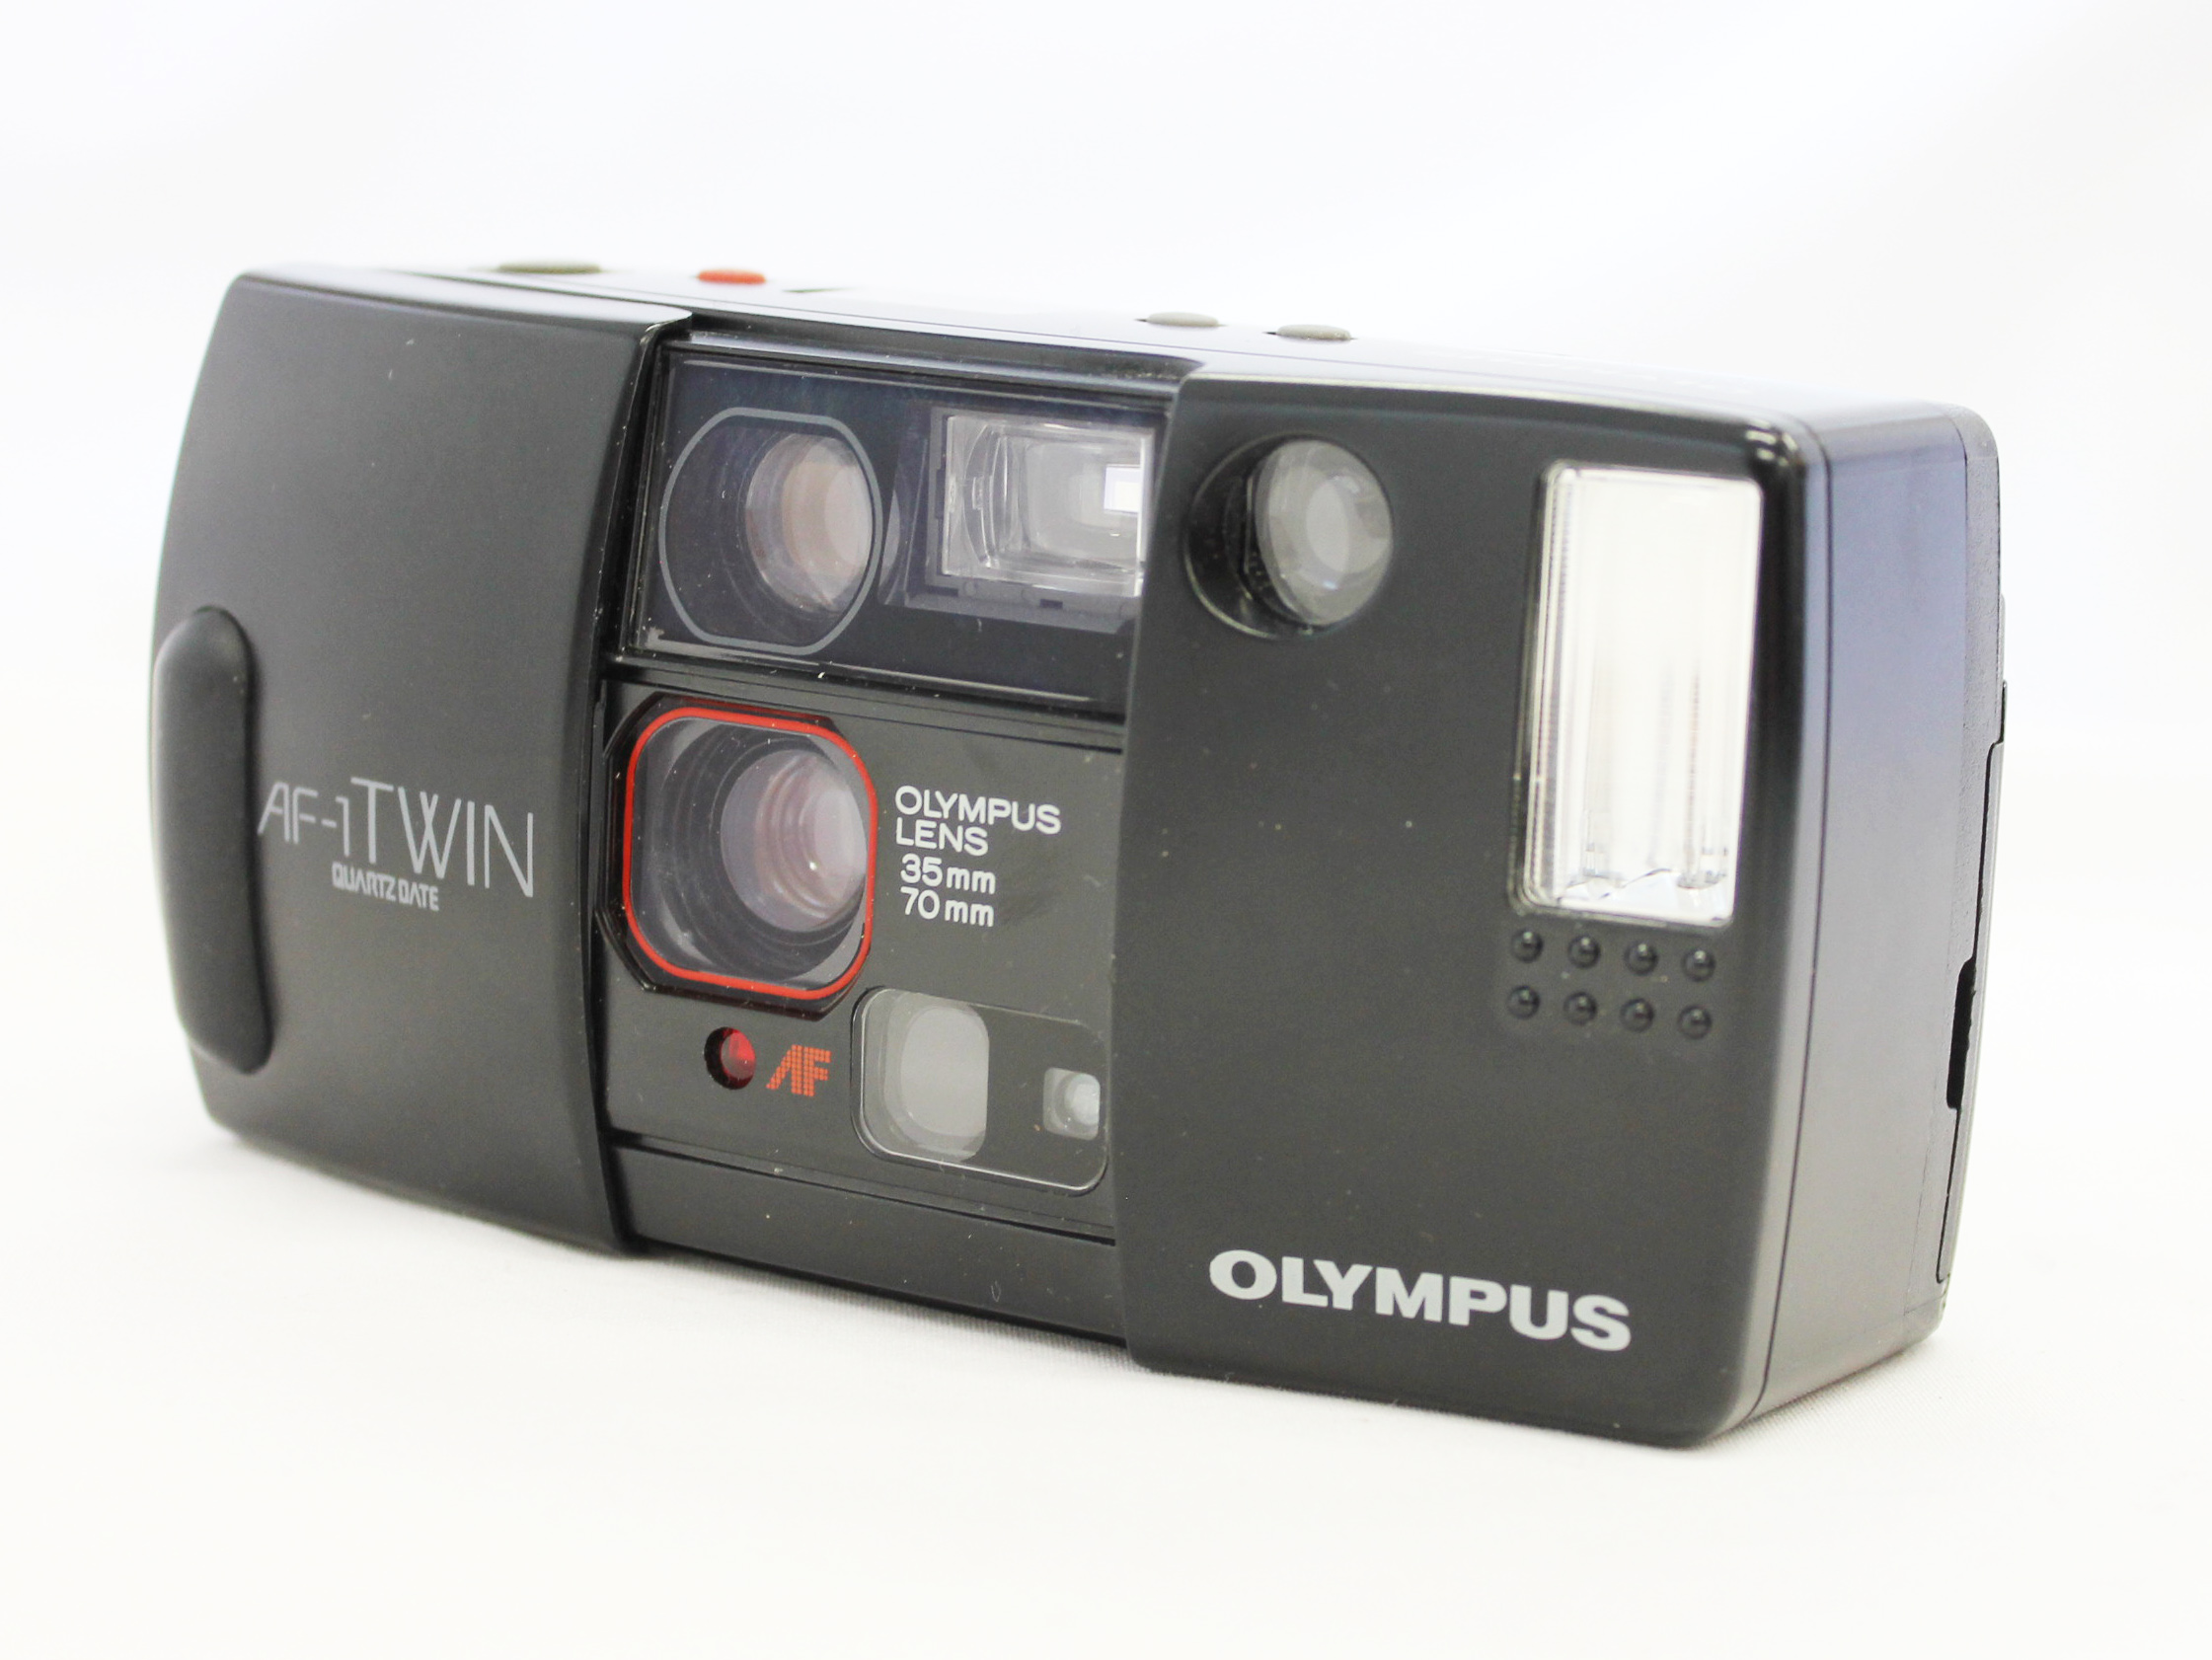 Japan Used Camera Shop | [Near Mint] Olympus AF-1 Twin Point & Shoot 35mm Film Camera from Japan